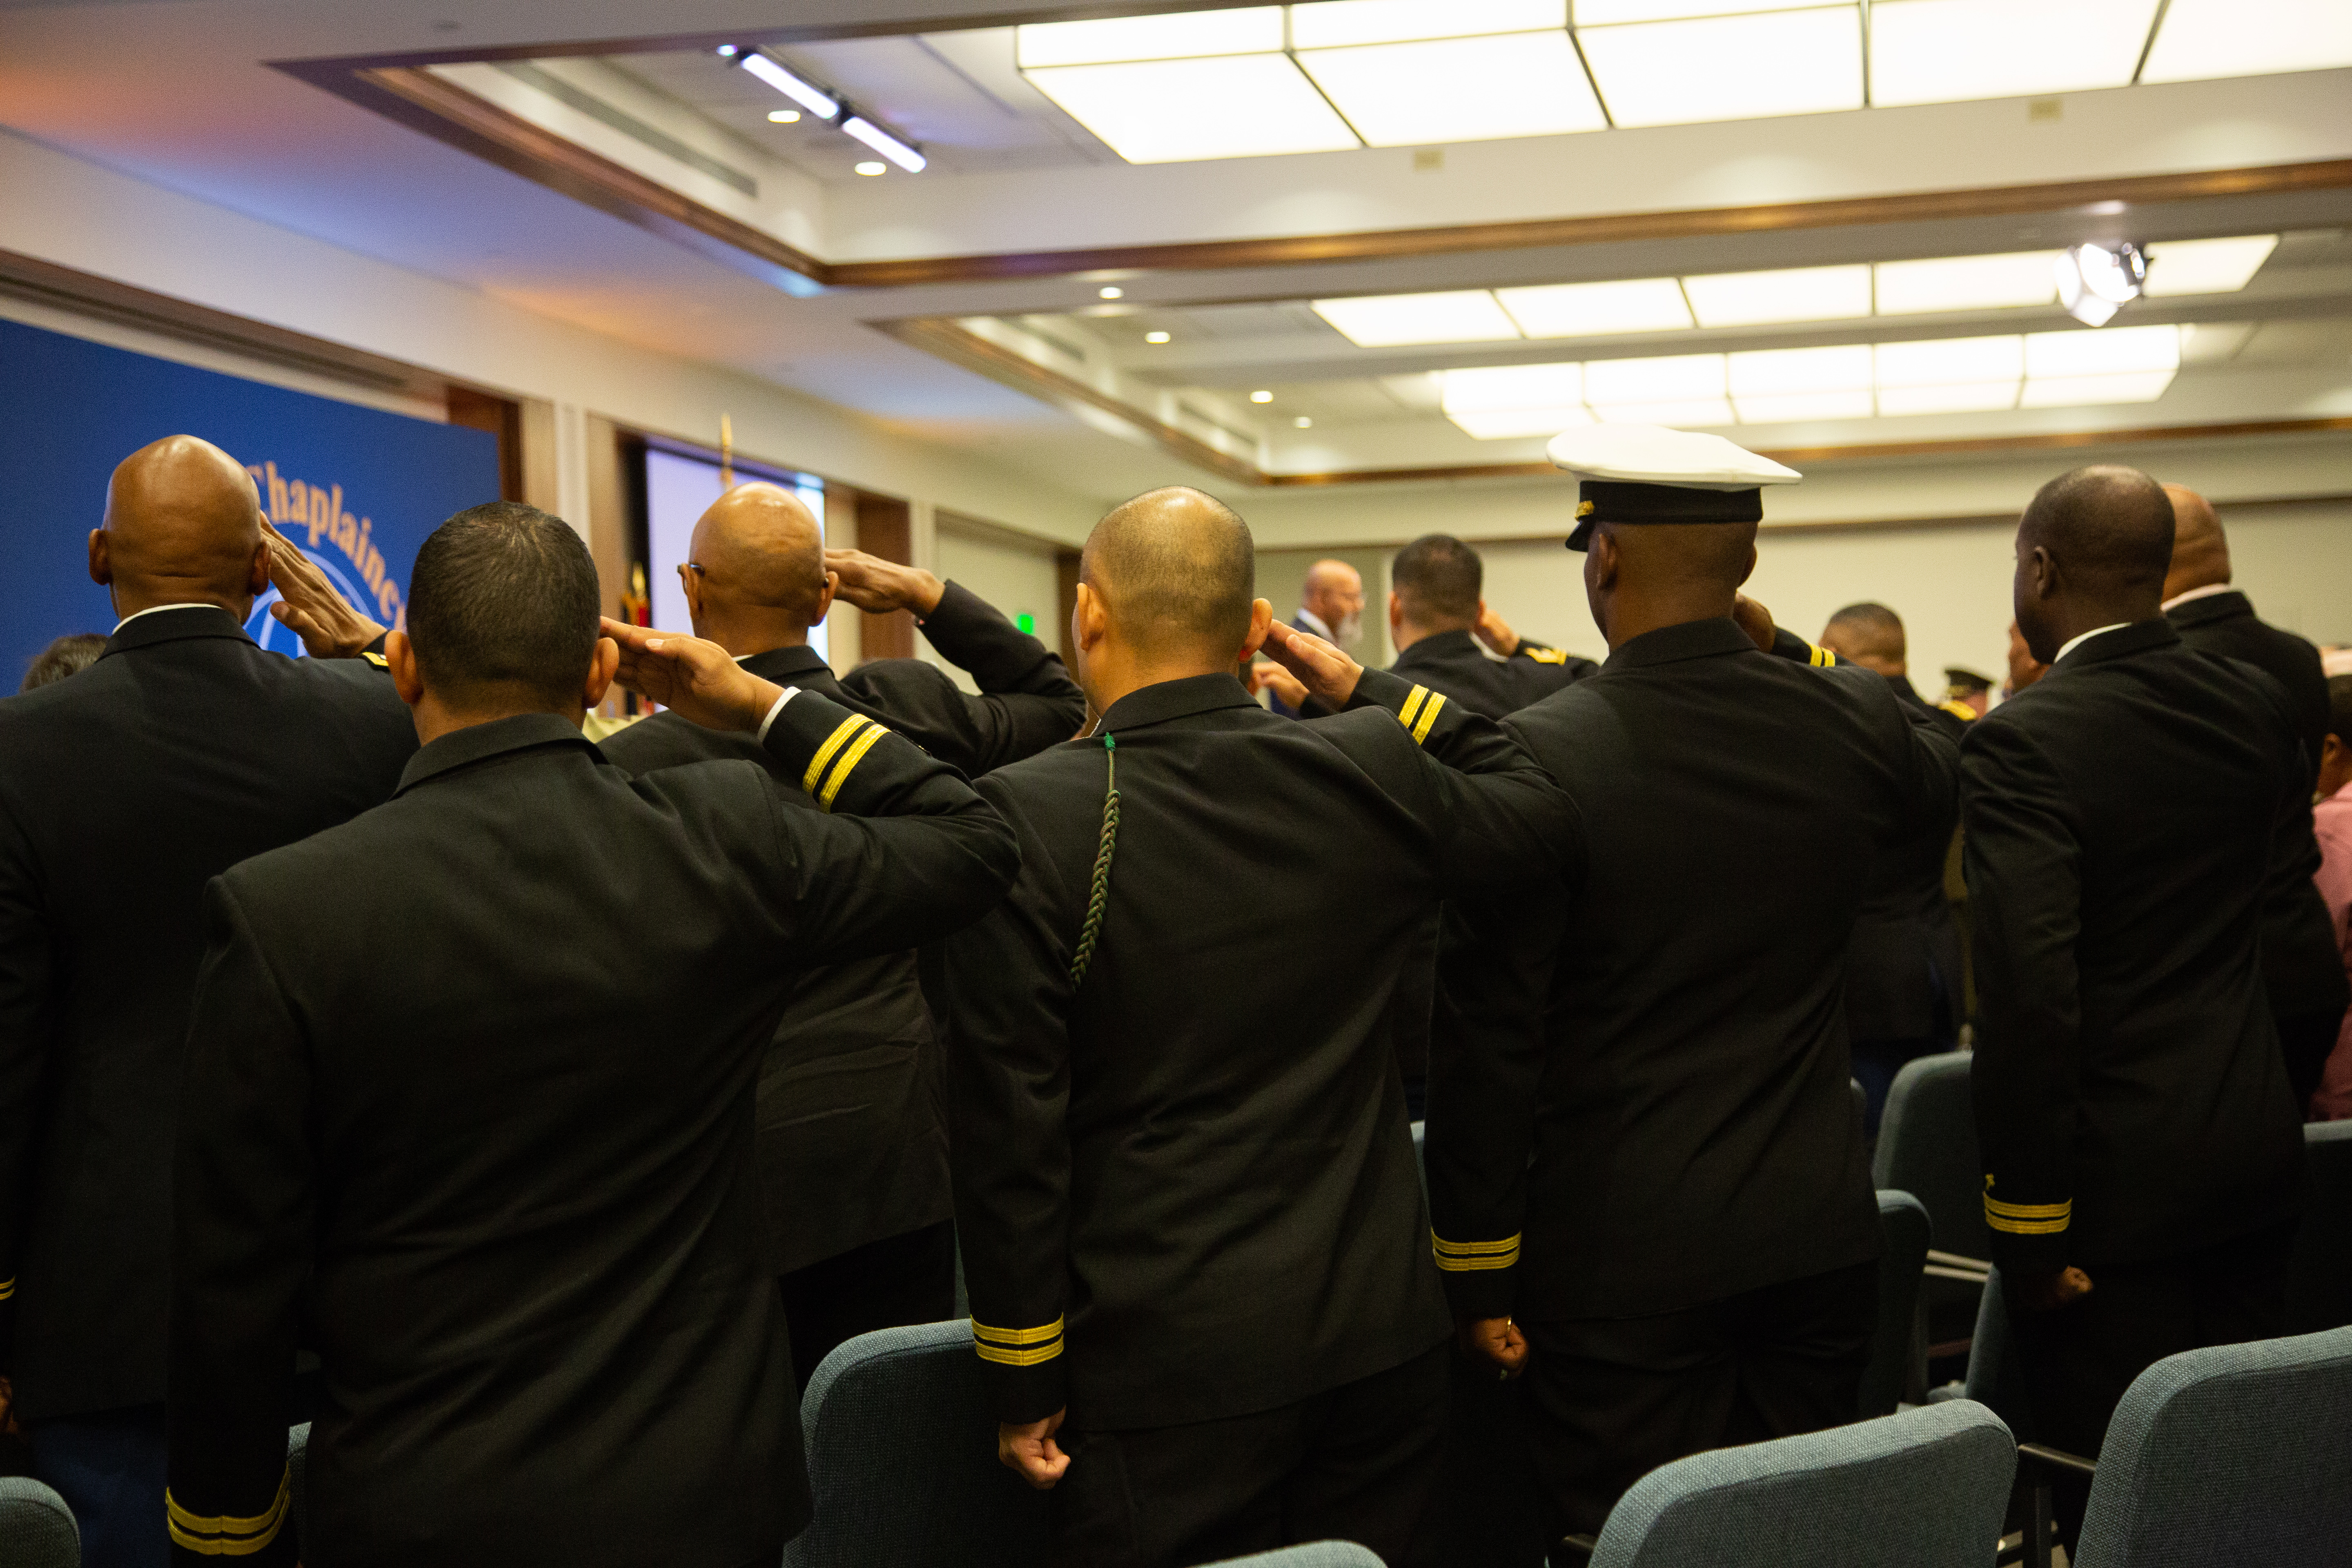 Servicemen salute in memory of Staff Sgt. Stacey Mastrapa who was killed in 2004 while serving in Iraq.